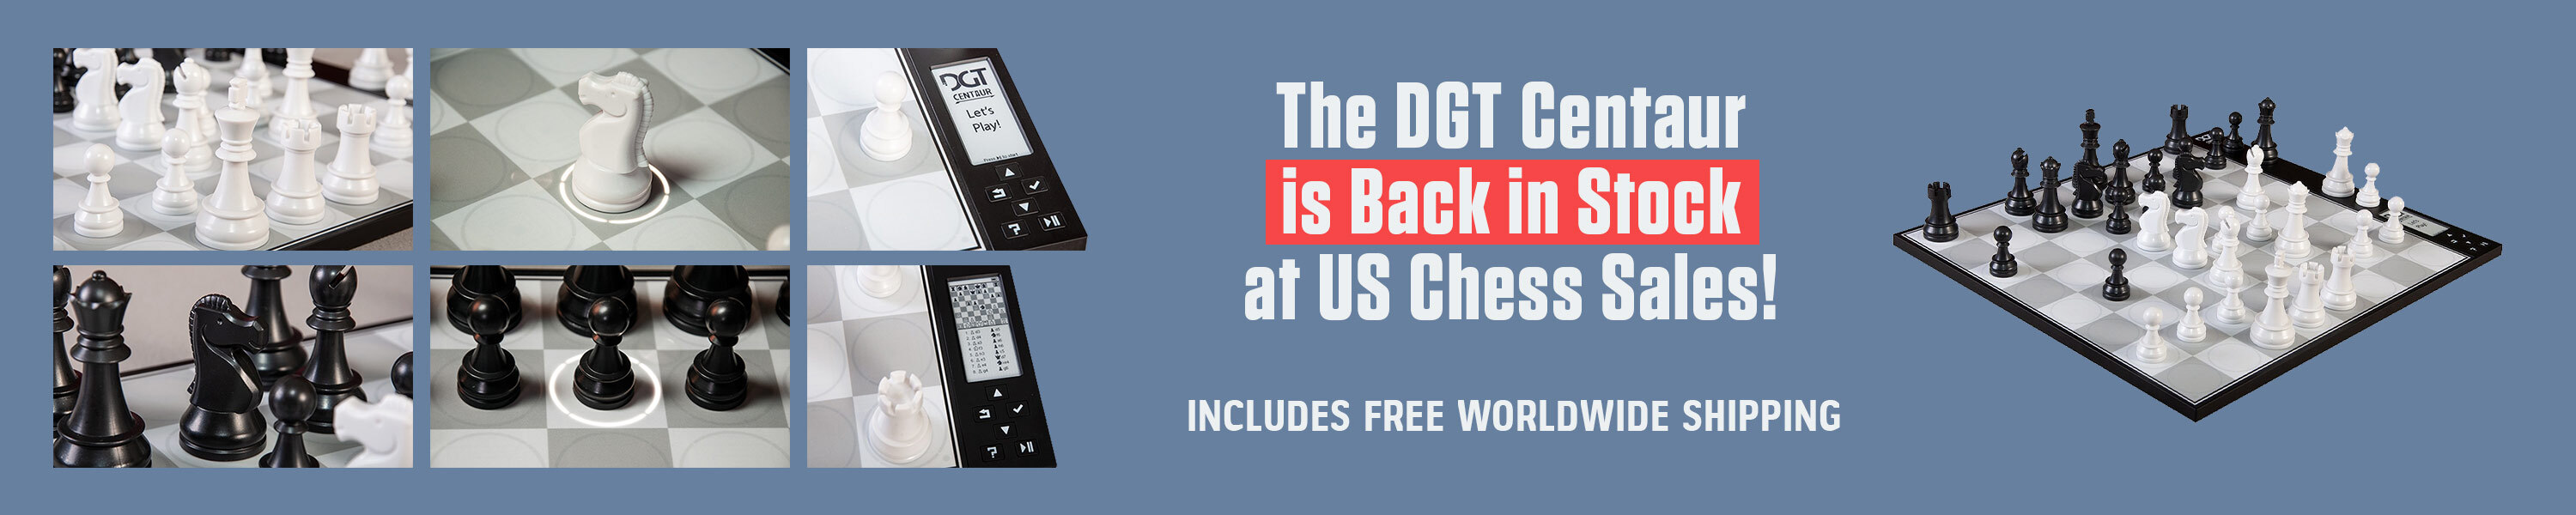 The DGT Centaur is Back in Stock